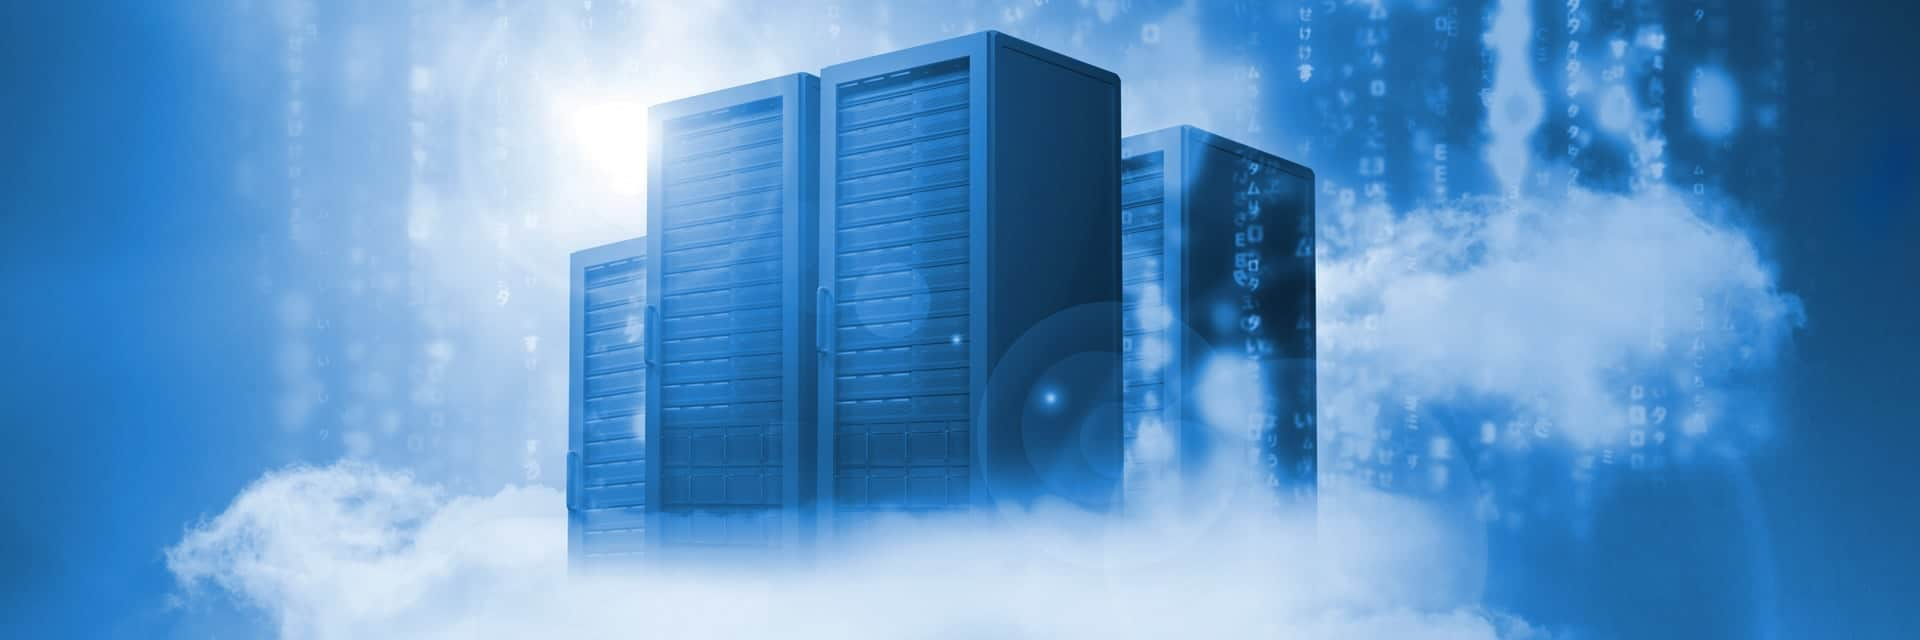 Sauvegarde Cloud Computing